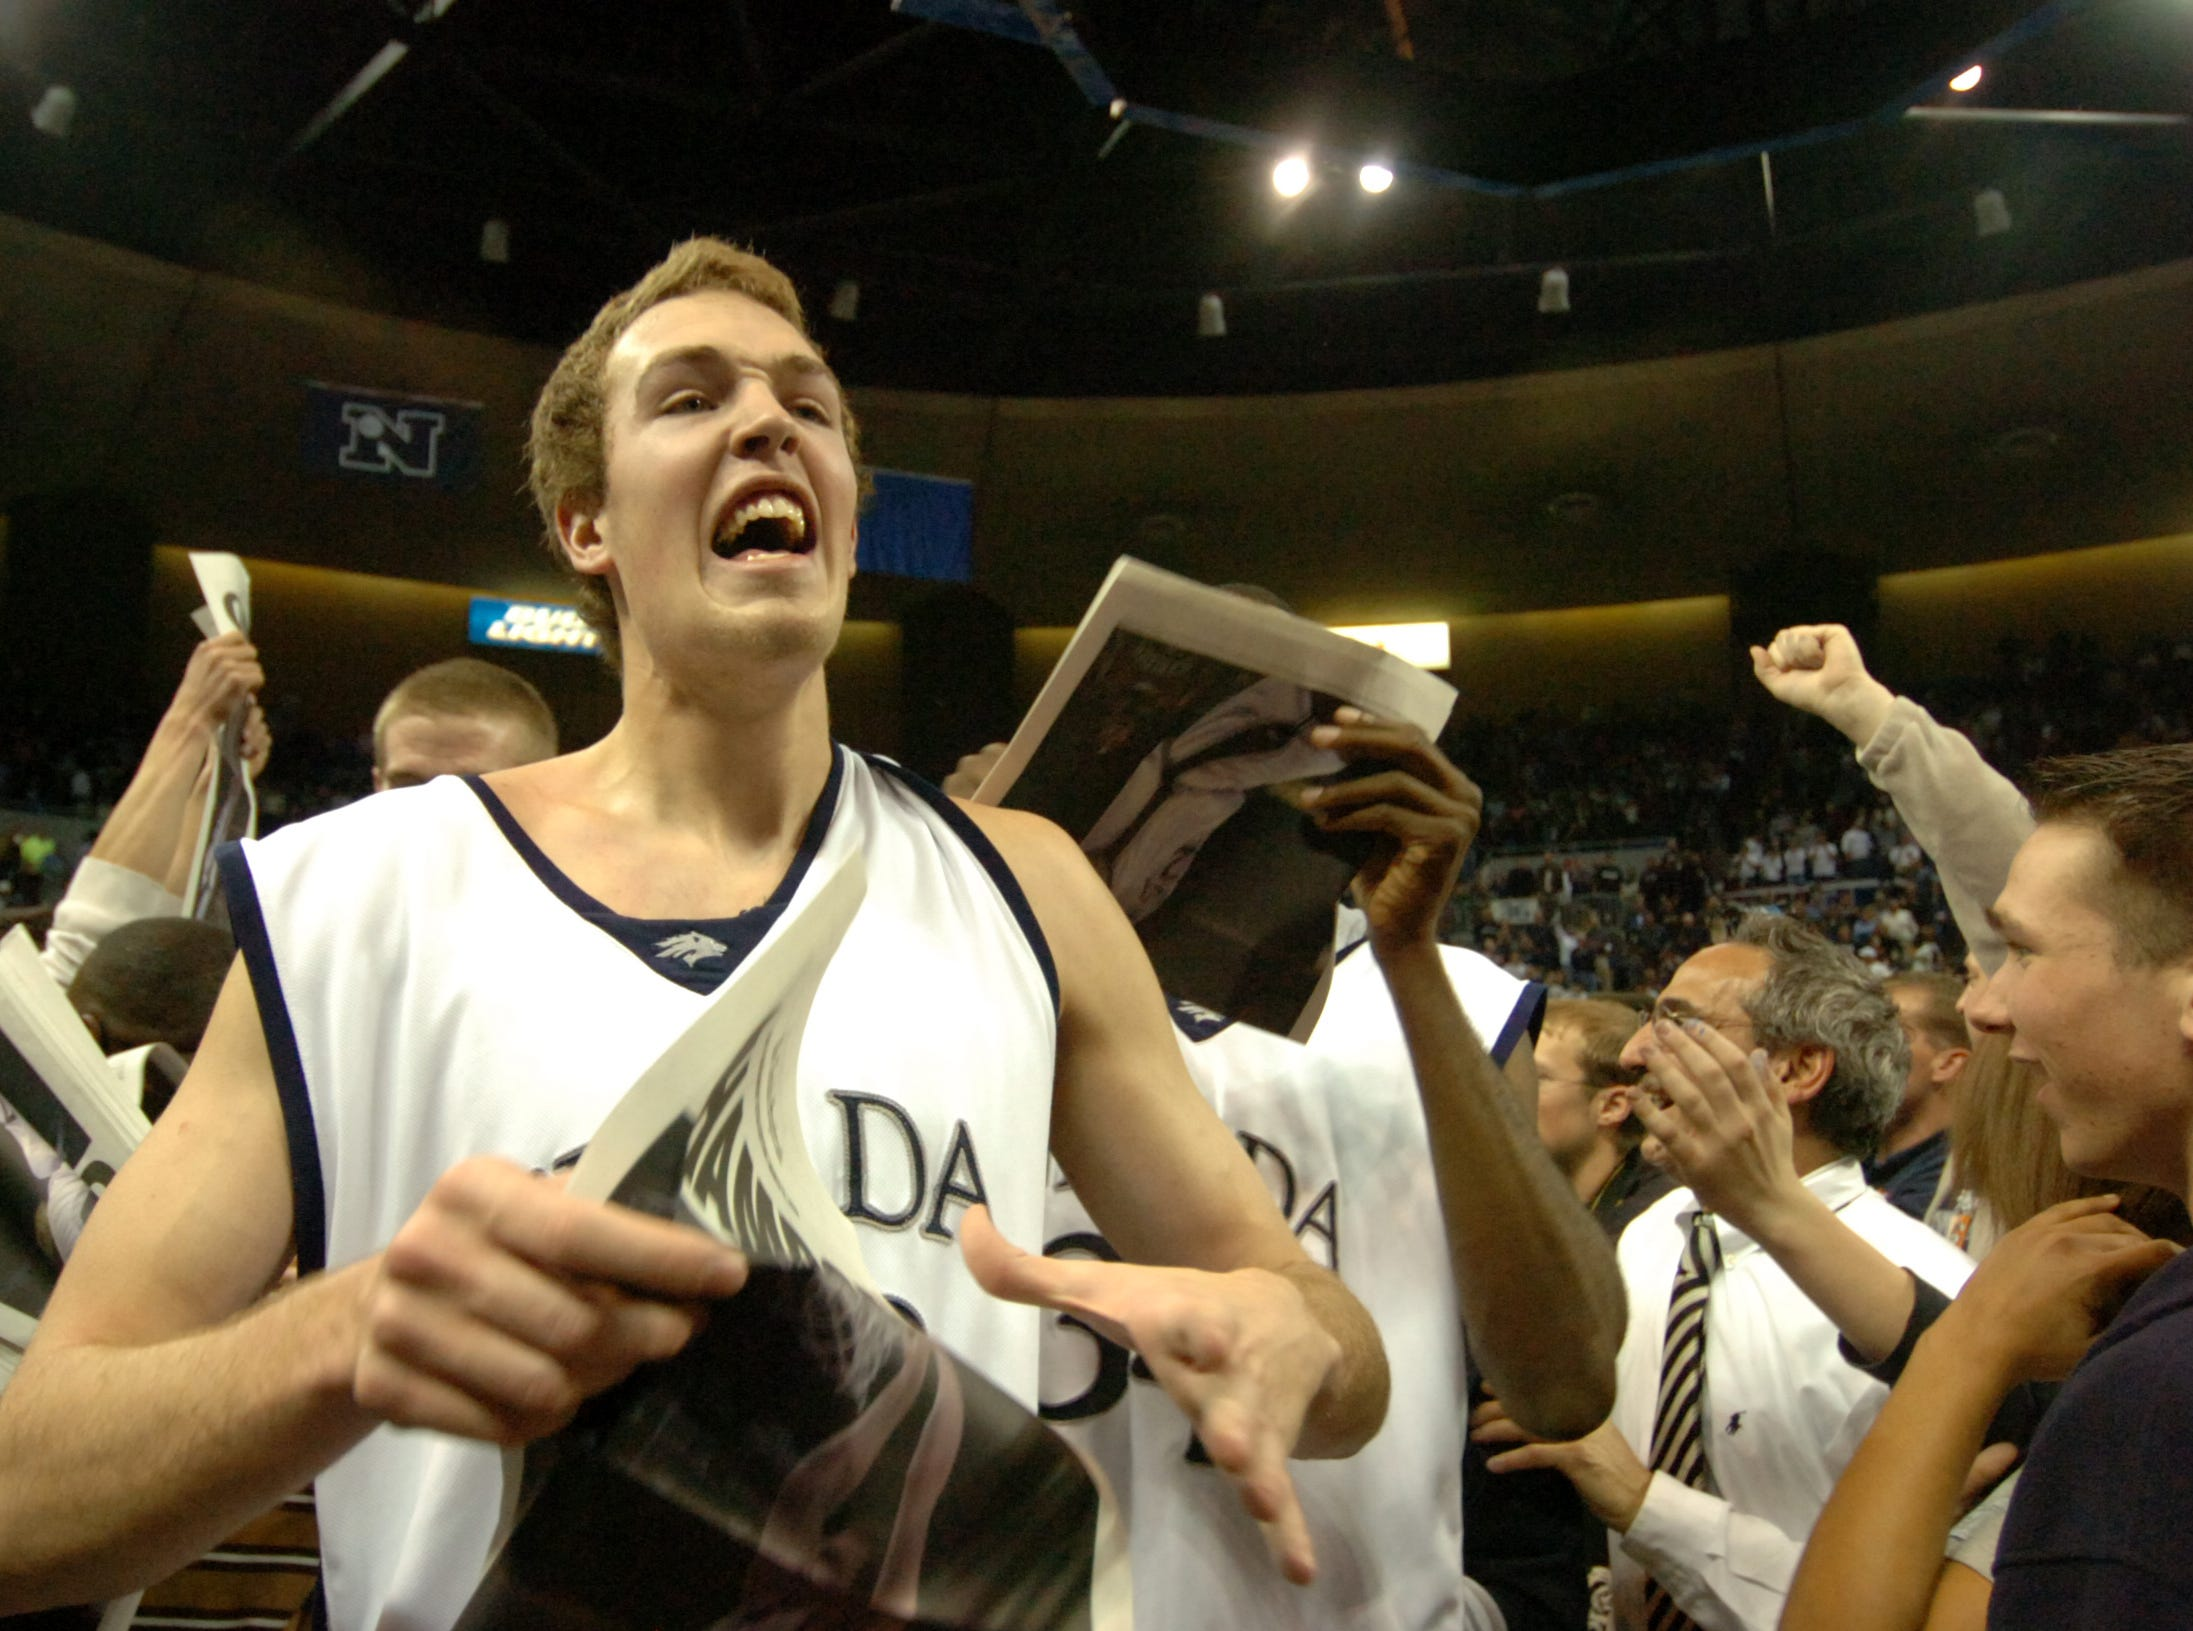 2006: Celebrating the WAC tournament title.